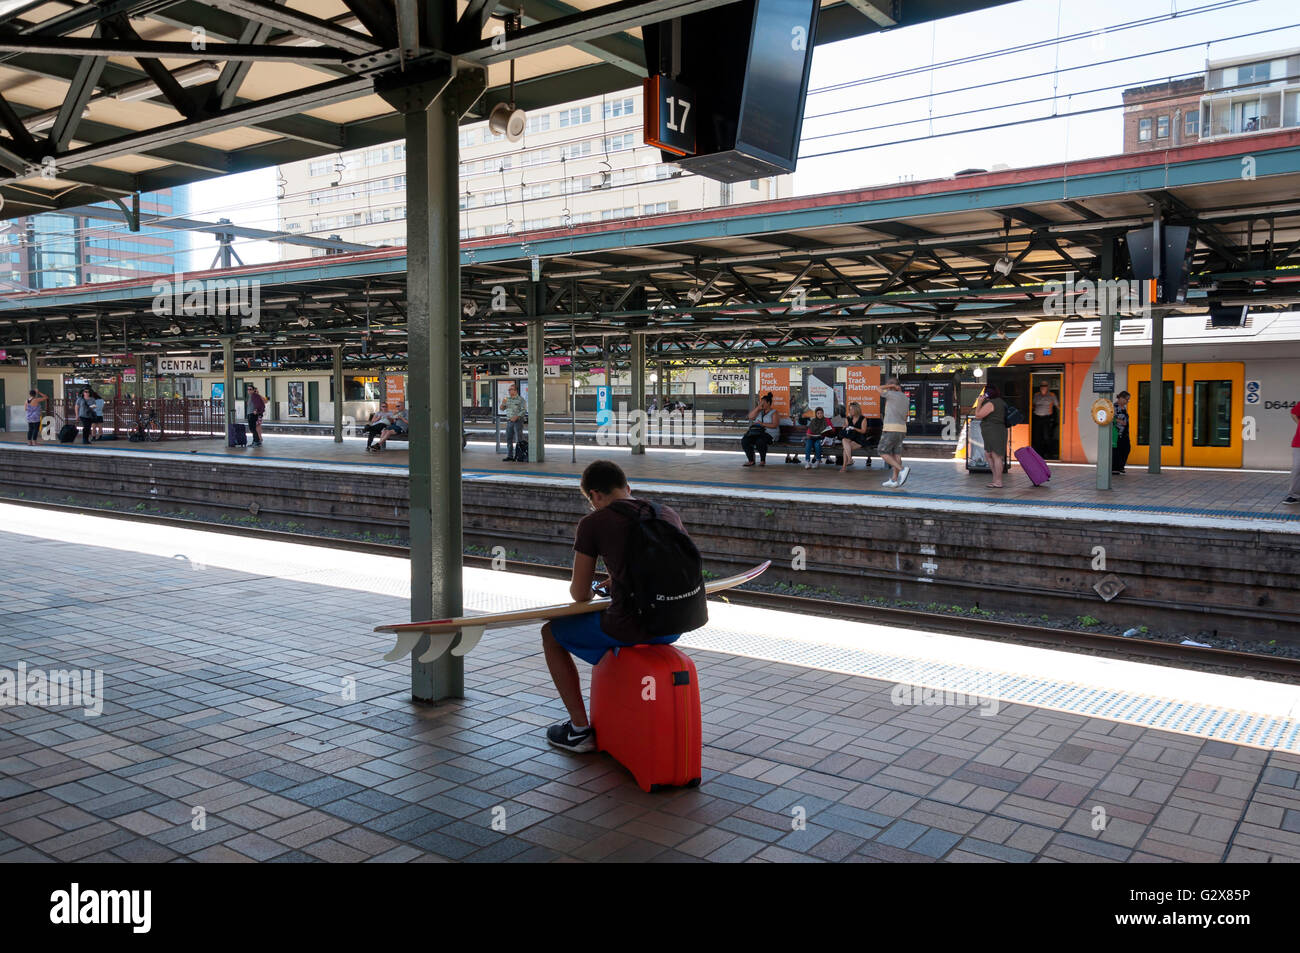 Passengers on platform, Central Railway Station, Haymarket, Sydney, New South Wales, Australia - Stock Image